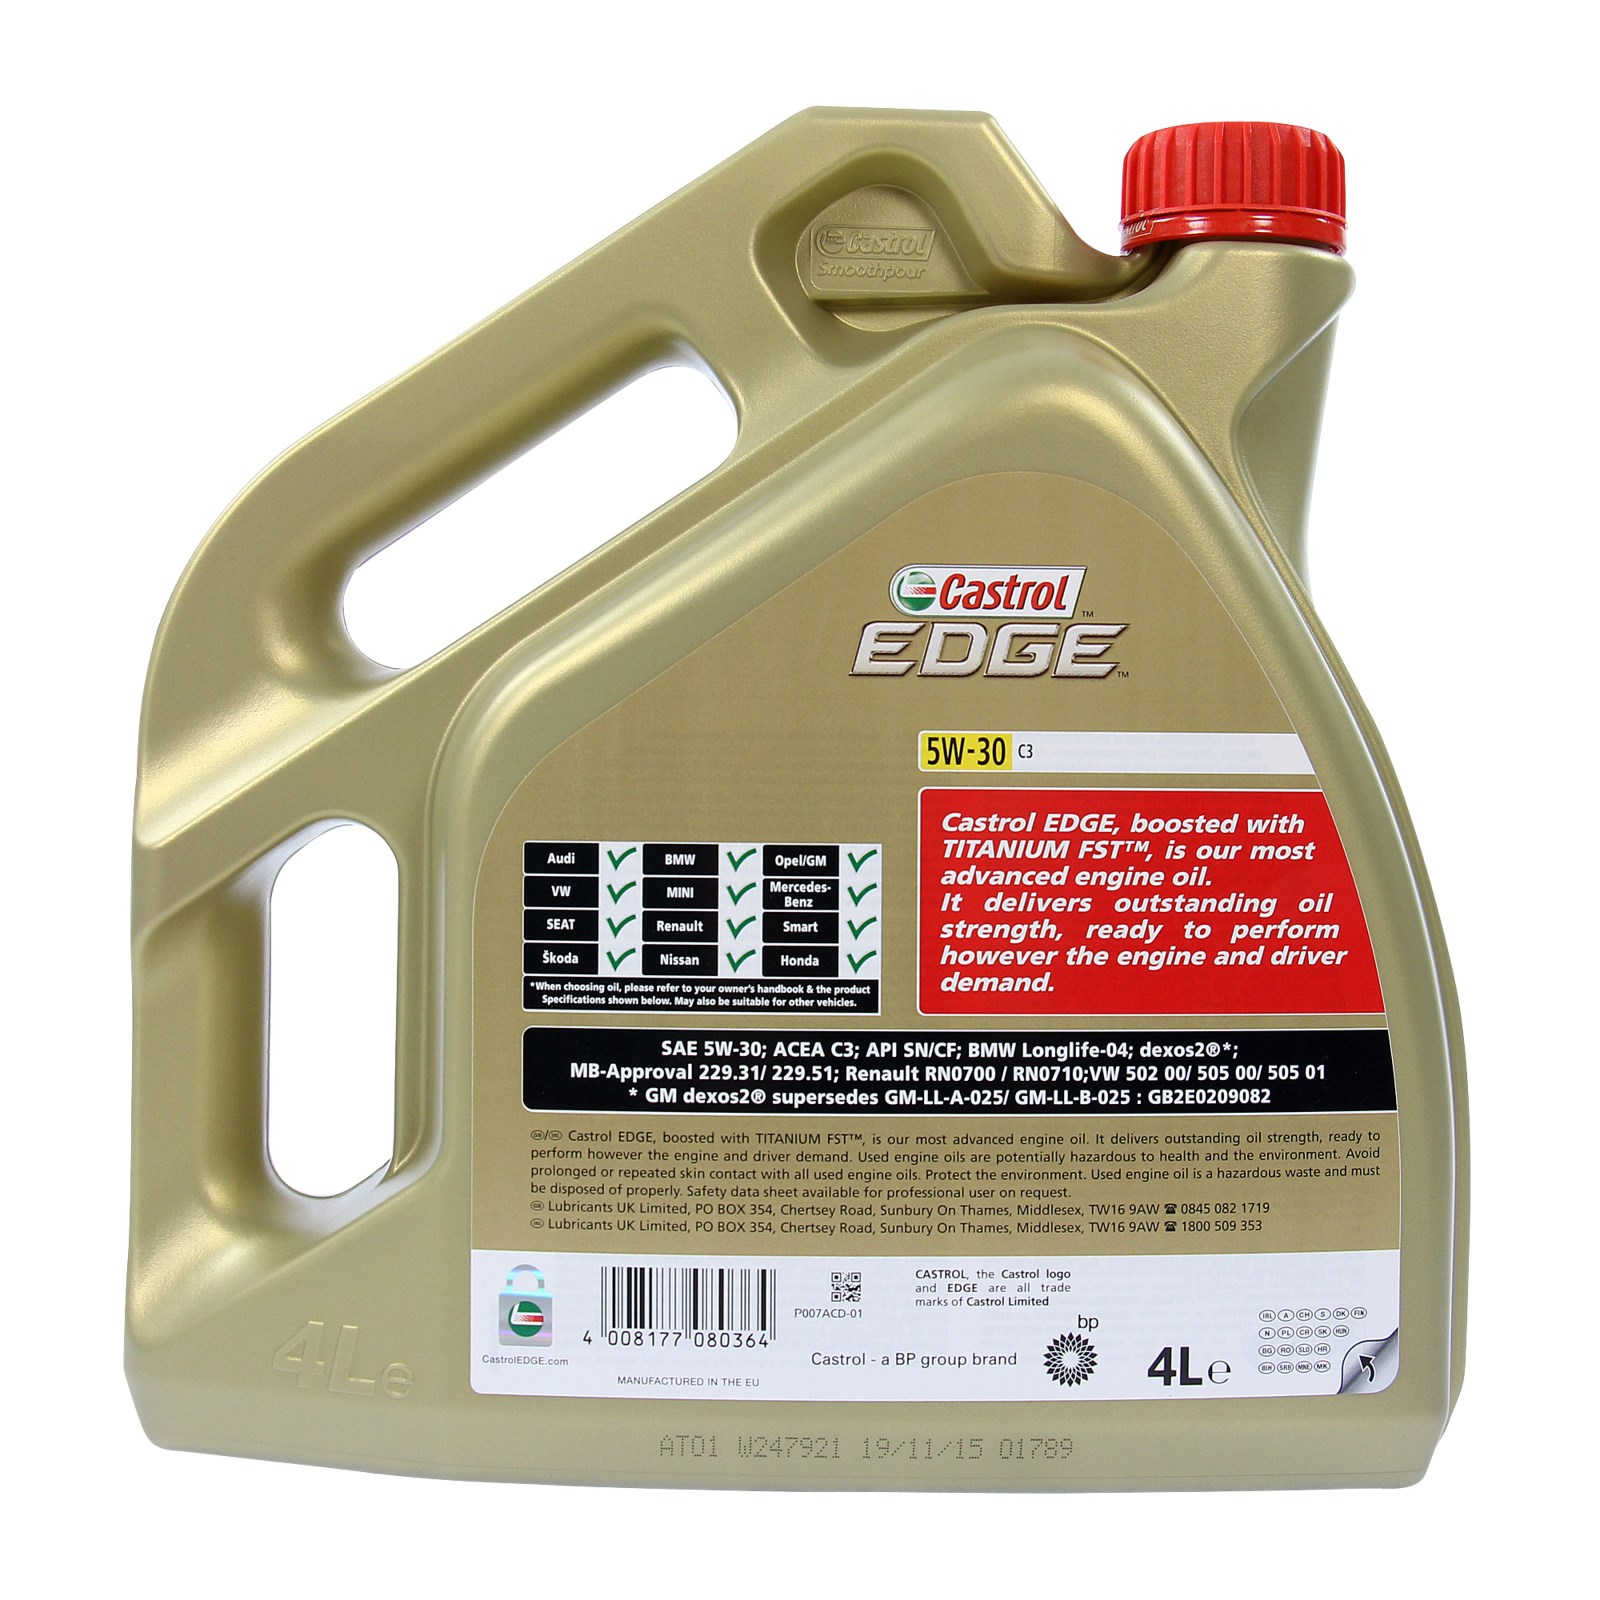 2x 4 l 8 litre castrol edge fst 5w 30 c3 engine oil bmw longlife 04 ebay. Black Bedroom Furniture Sets. Home Design Ideas